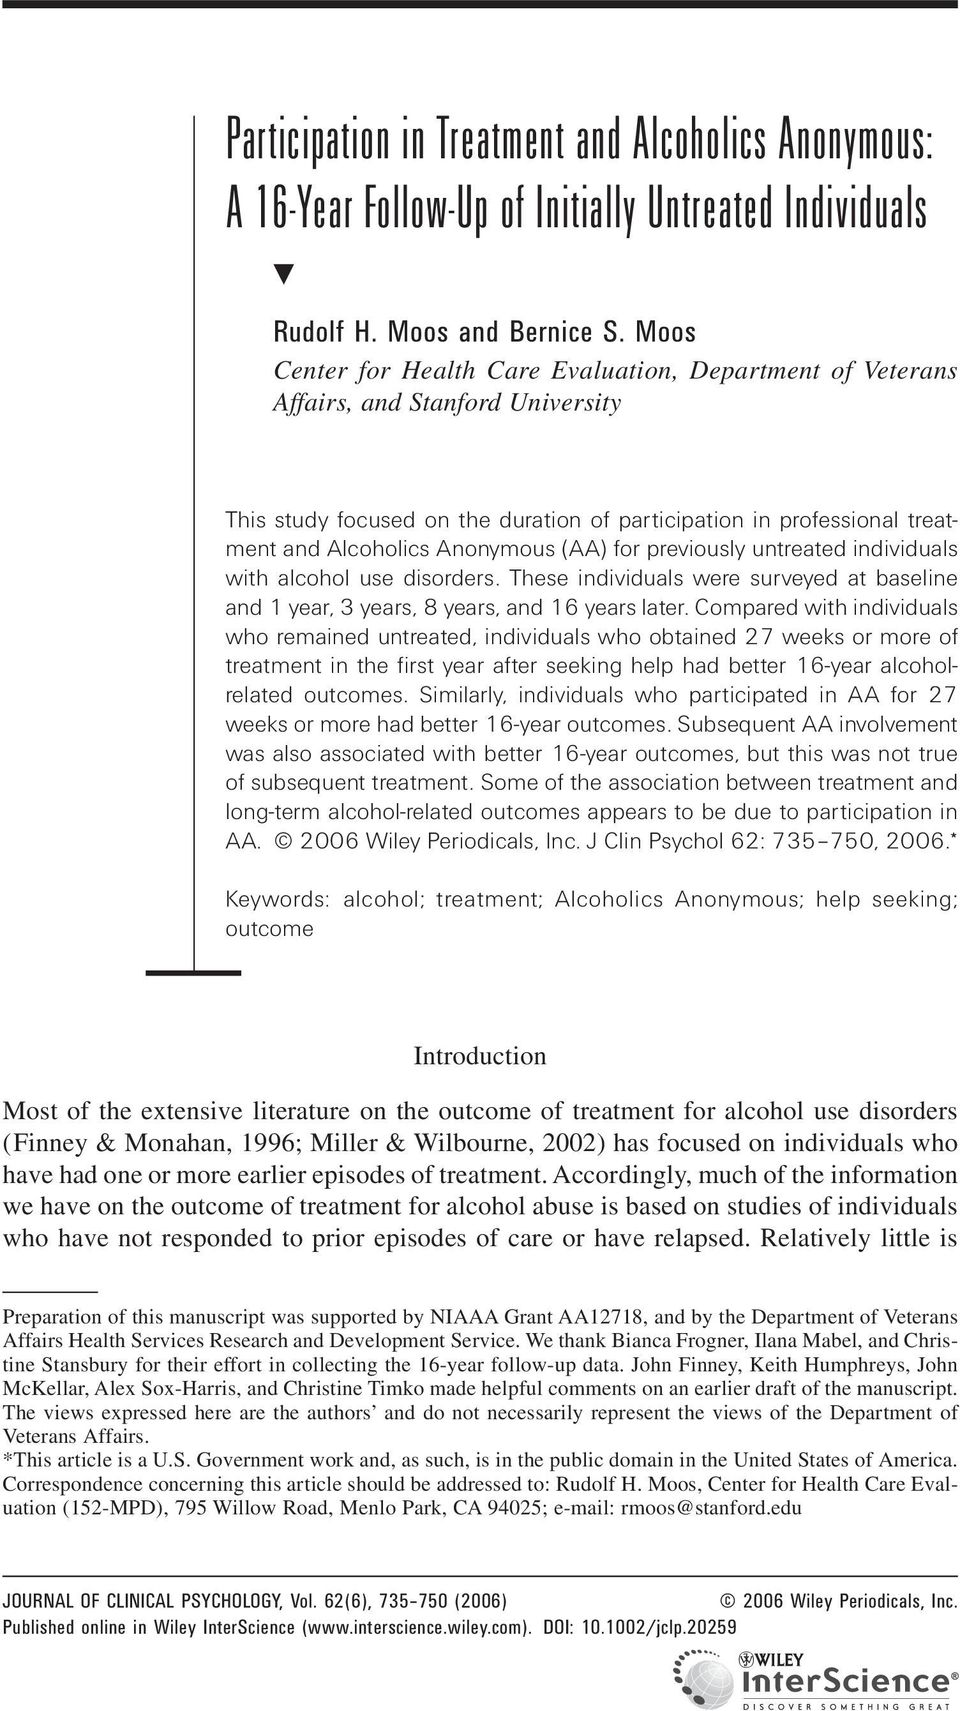 (AA) for previously untreated individuals with alcohol use disorders. These individuals were surveyed at baseline and 1 year, 3 years, 8 years, and 16 years later.